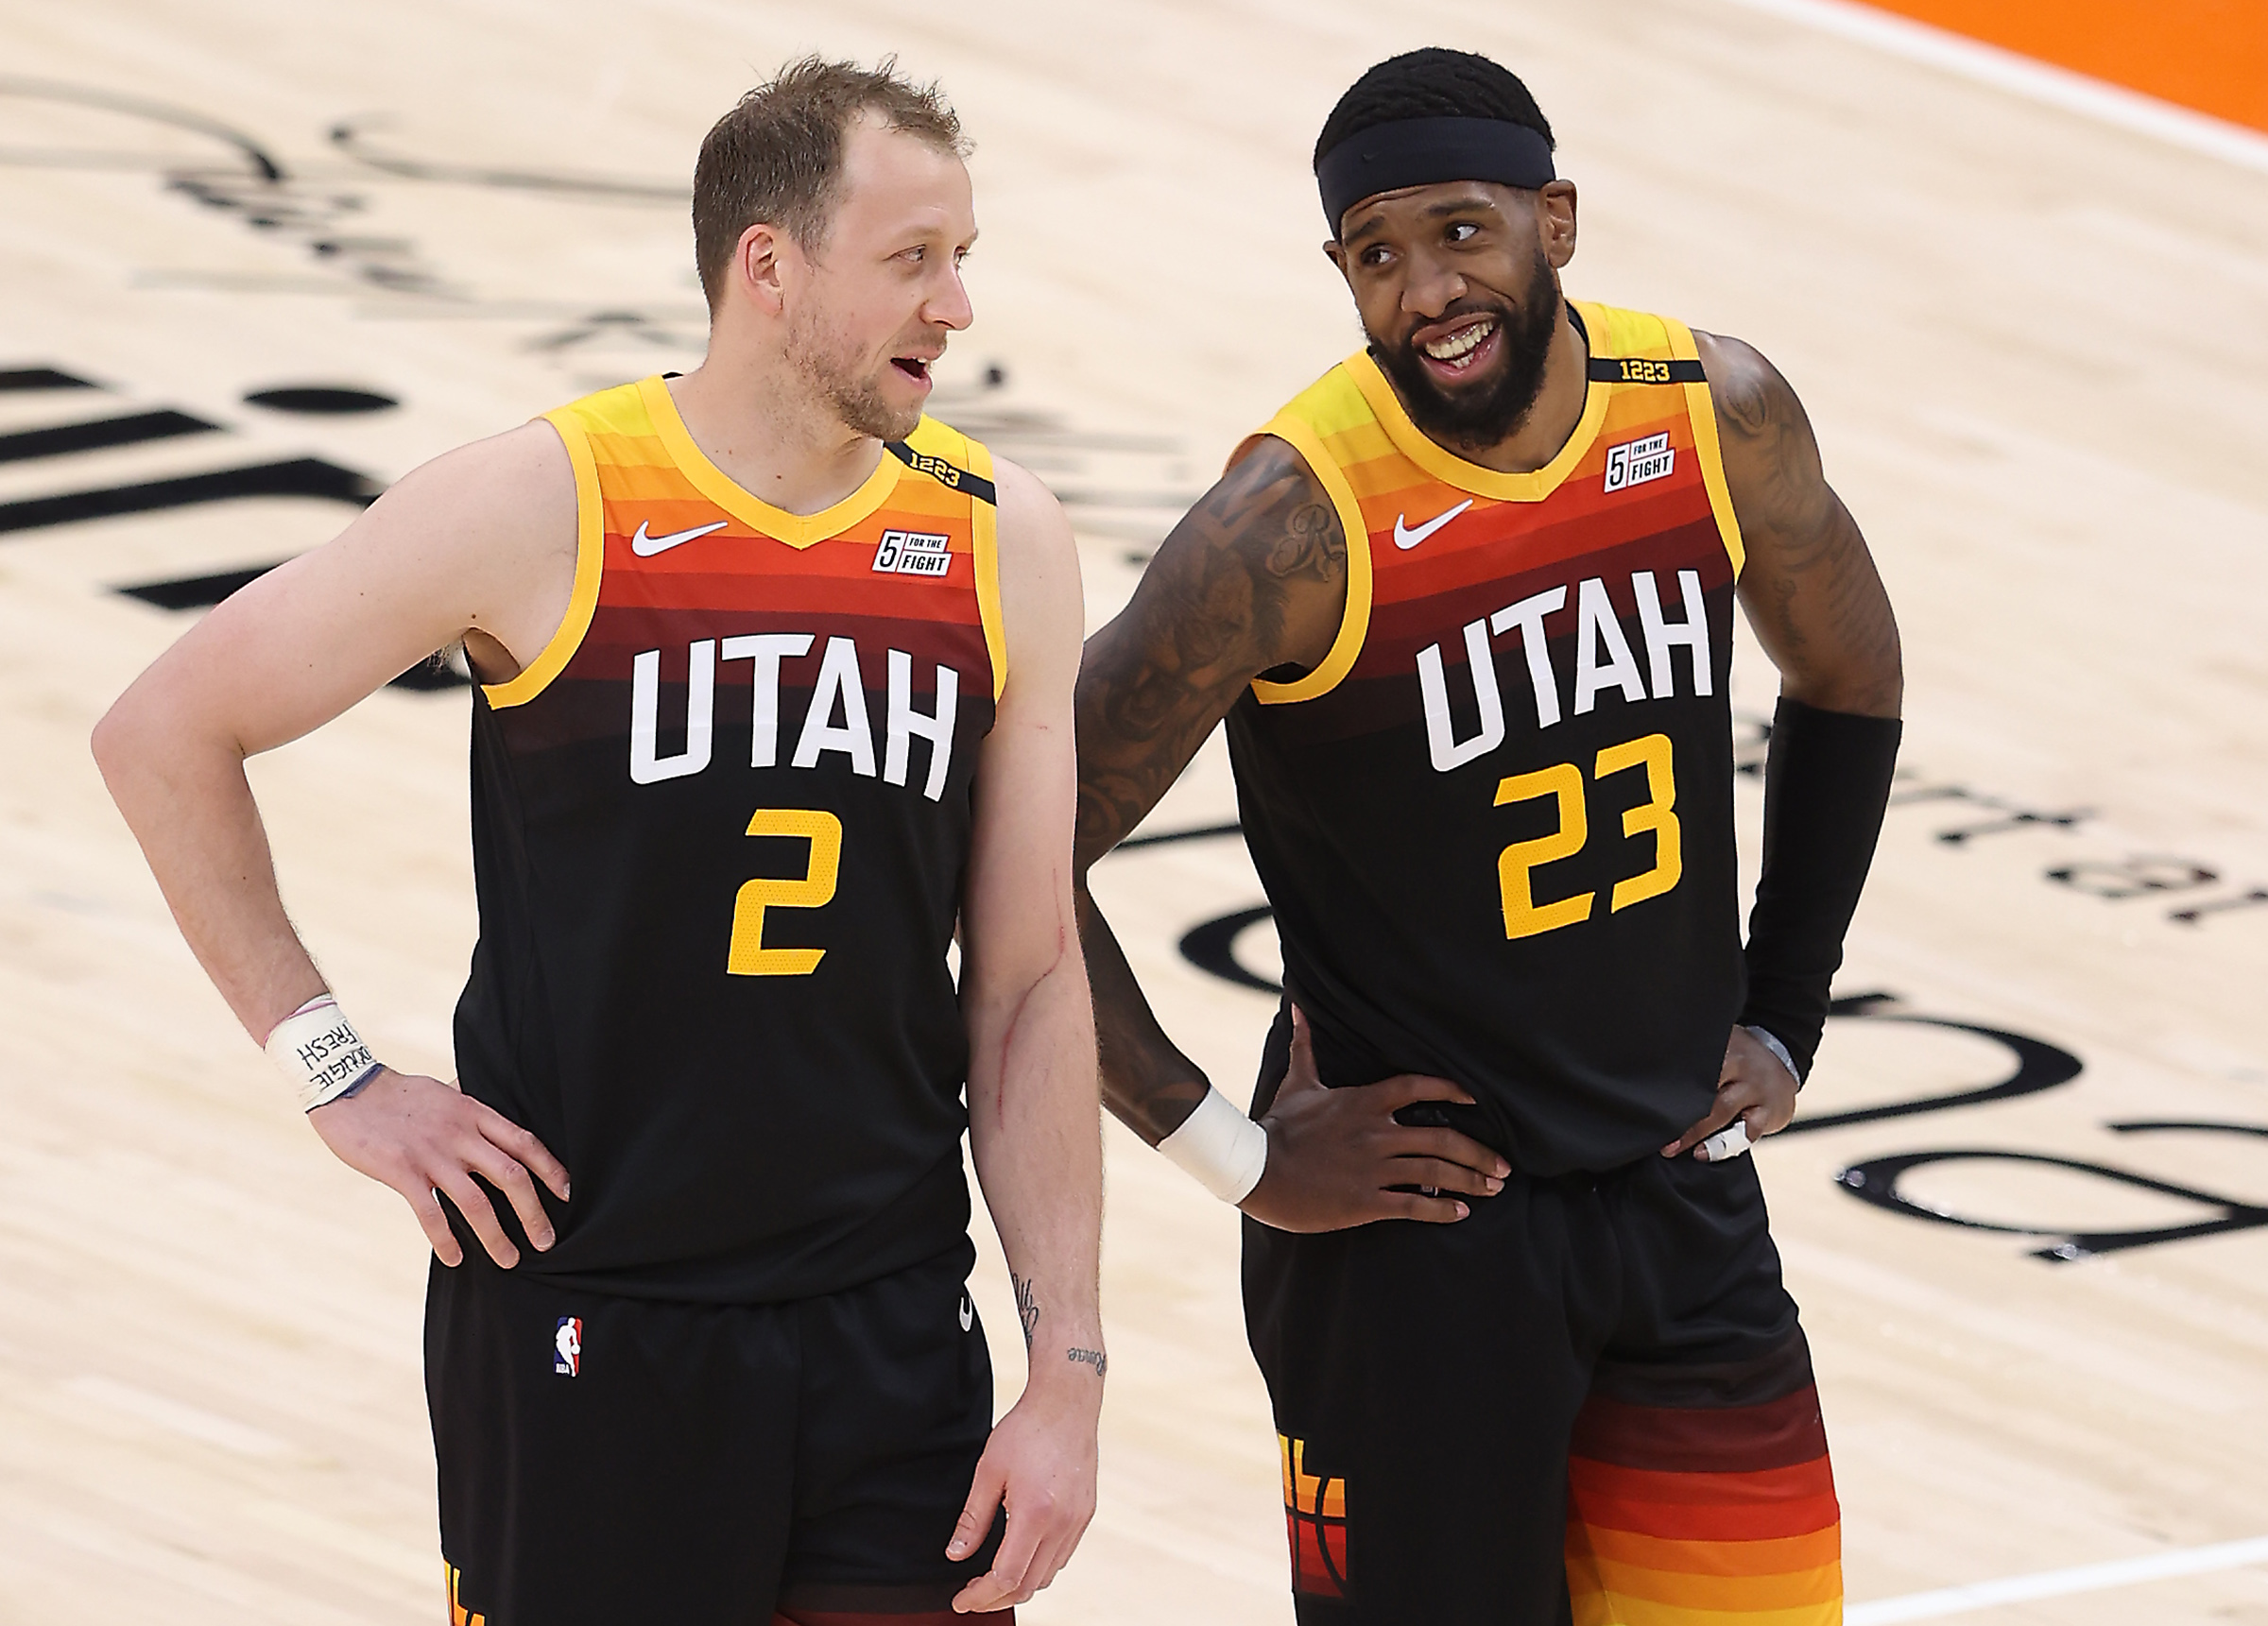 Utah Jazz guard Joe Ingles, left, and Royce O'Neale talk during free throw as the Jazz and Cleveland play in Salt Lake City.